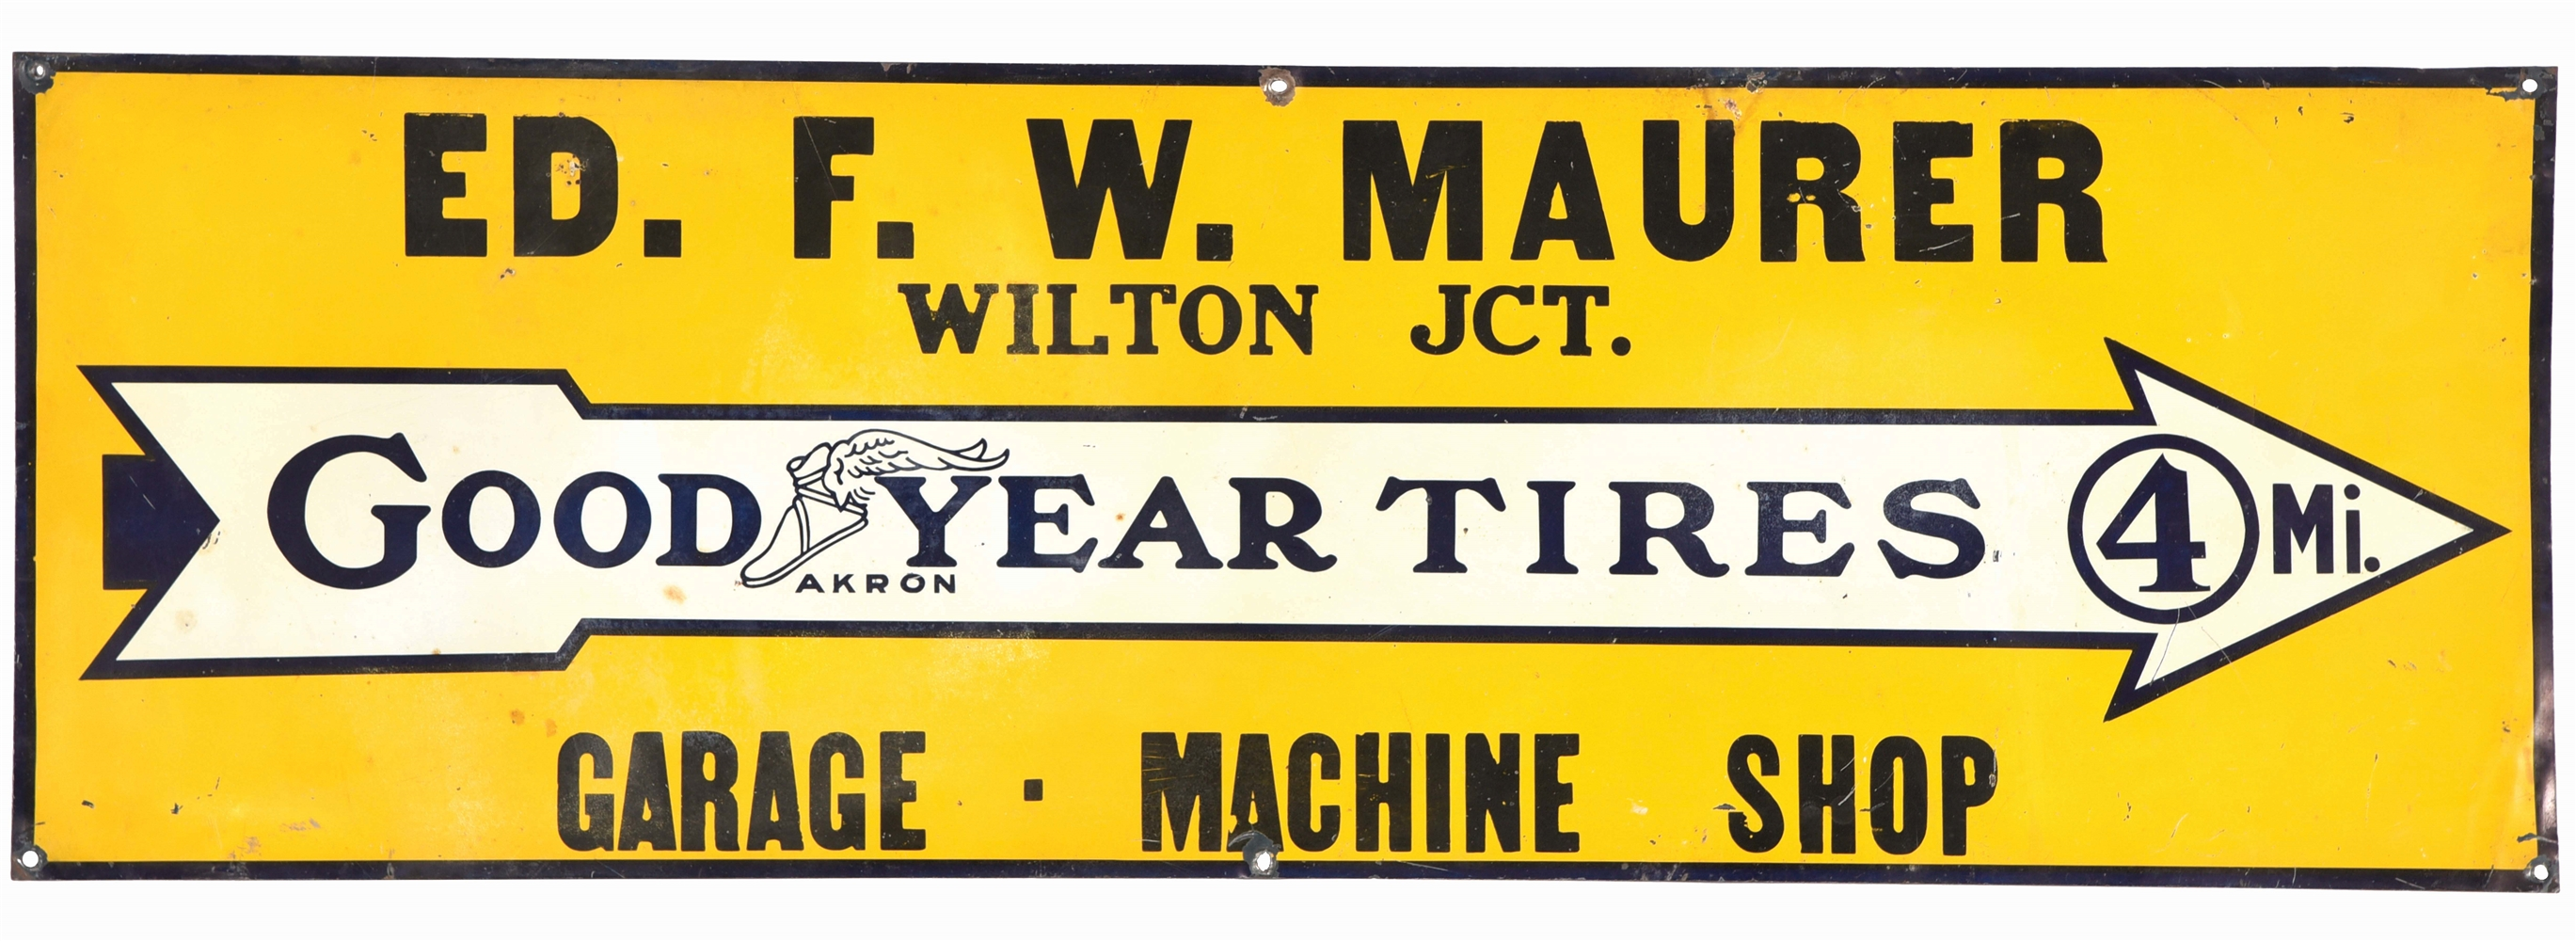 GOODYEAR TIRES TIN TACKER SIGN W/ WINGED FOOT & ARROW GRAPHIC.